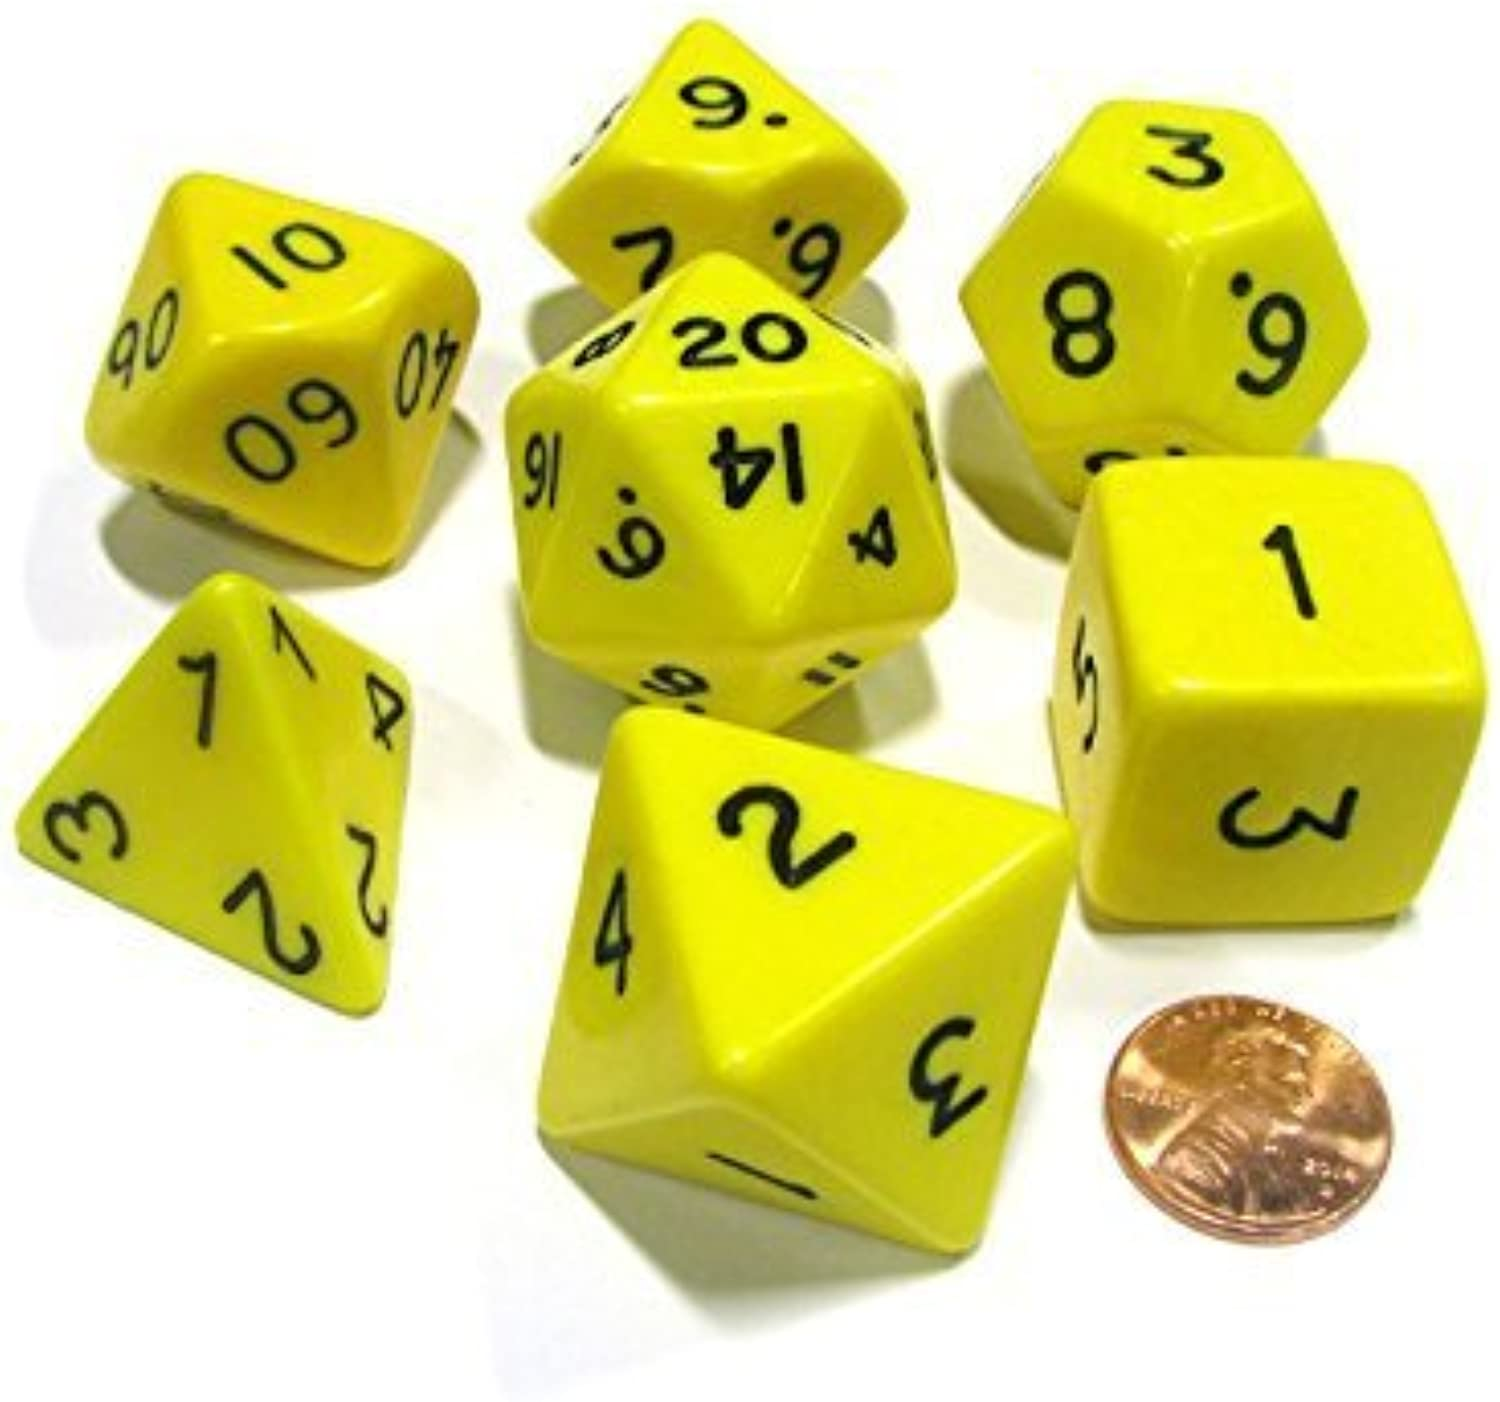 Yellow Jumbo Size 7 Pc Polyhedral Dice Set D4, D6, D8, 2xd10, D12, D20 by KOPLOW GAMES